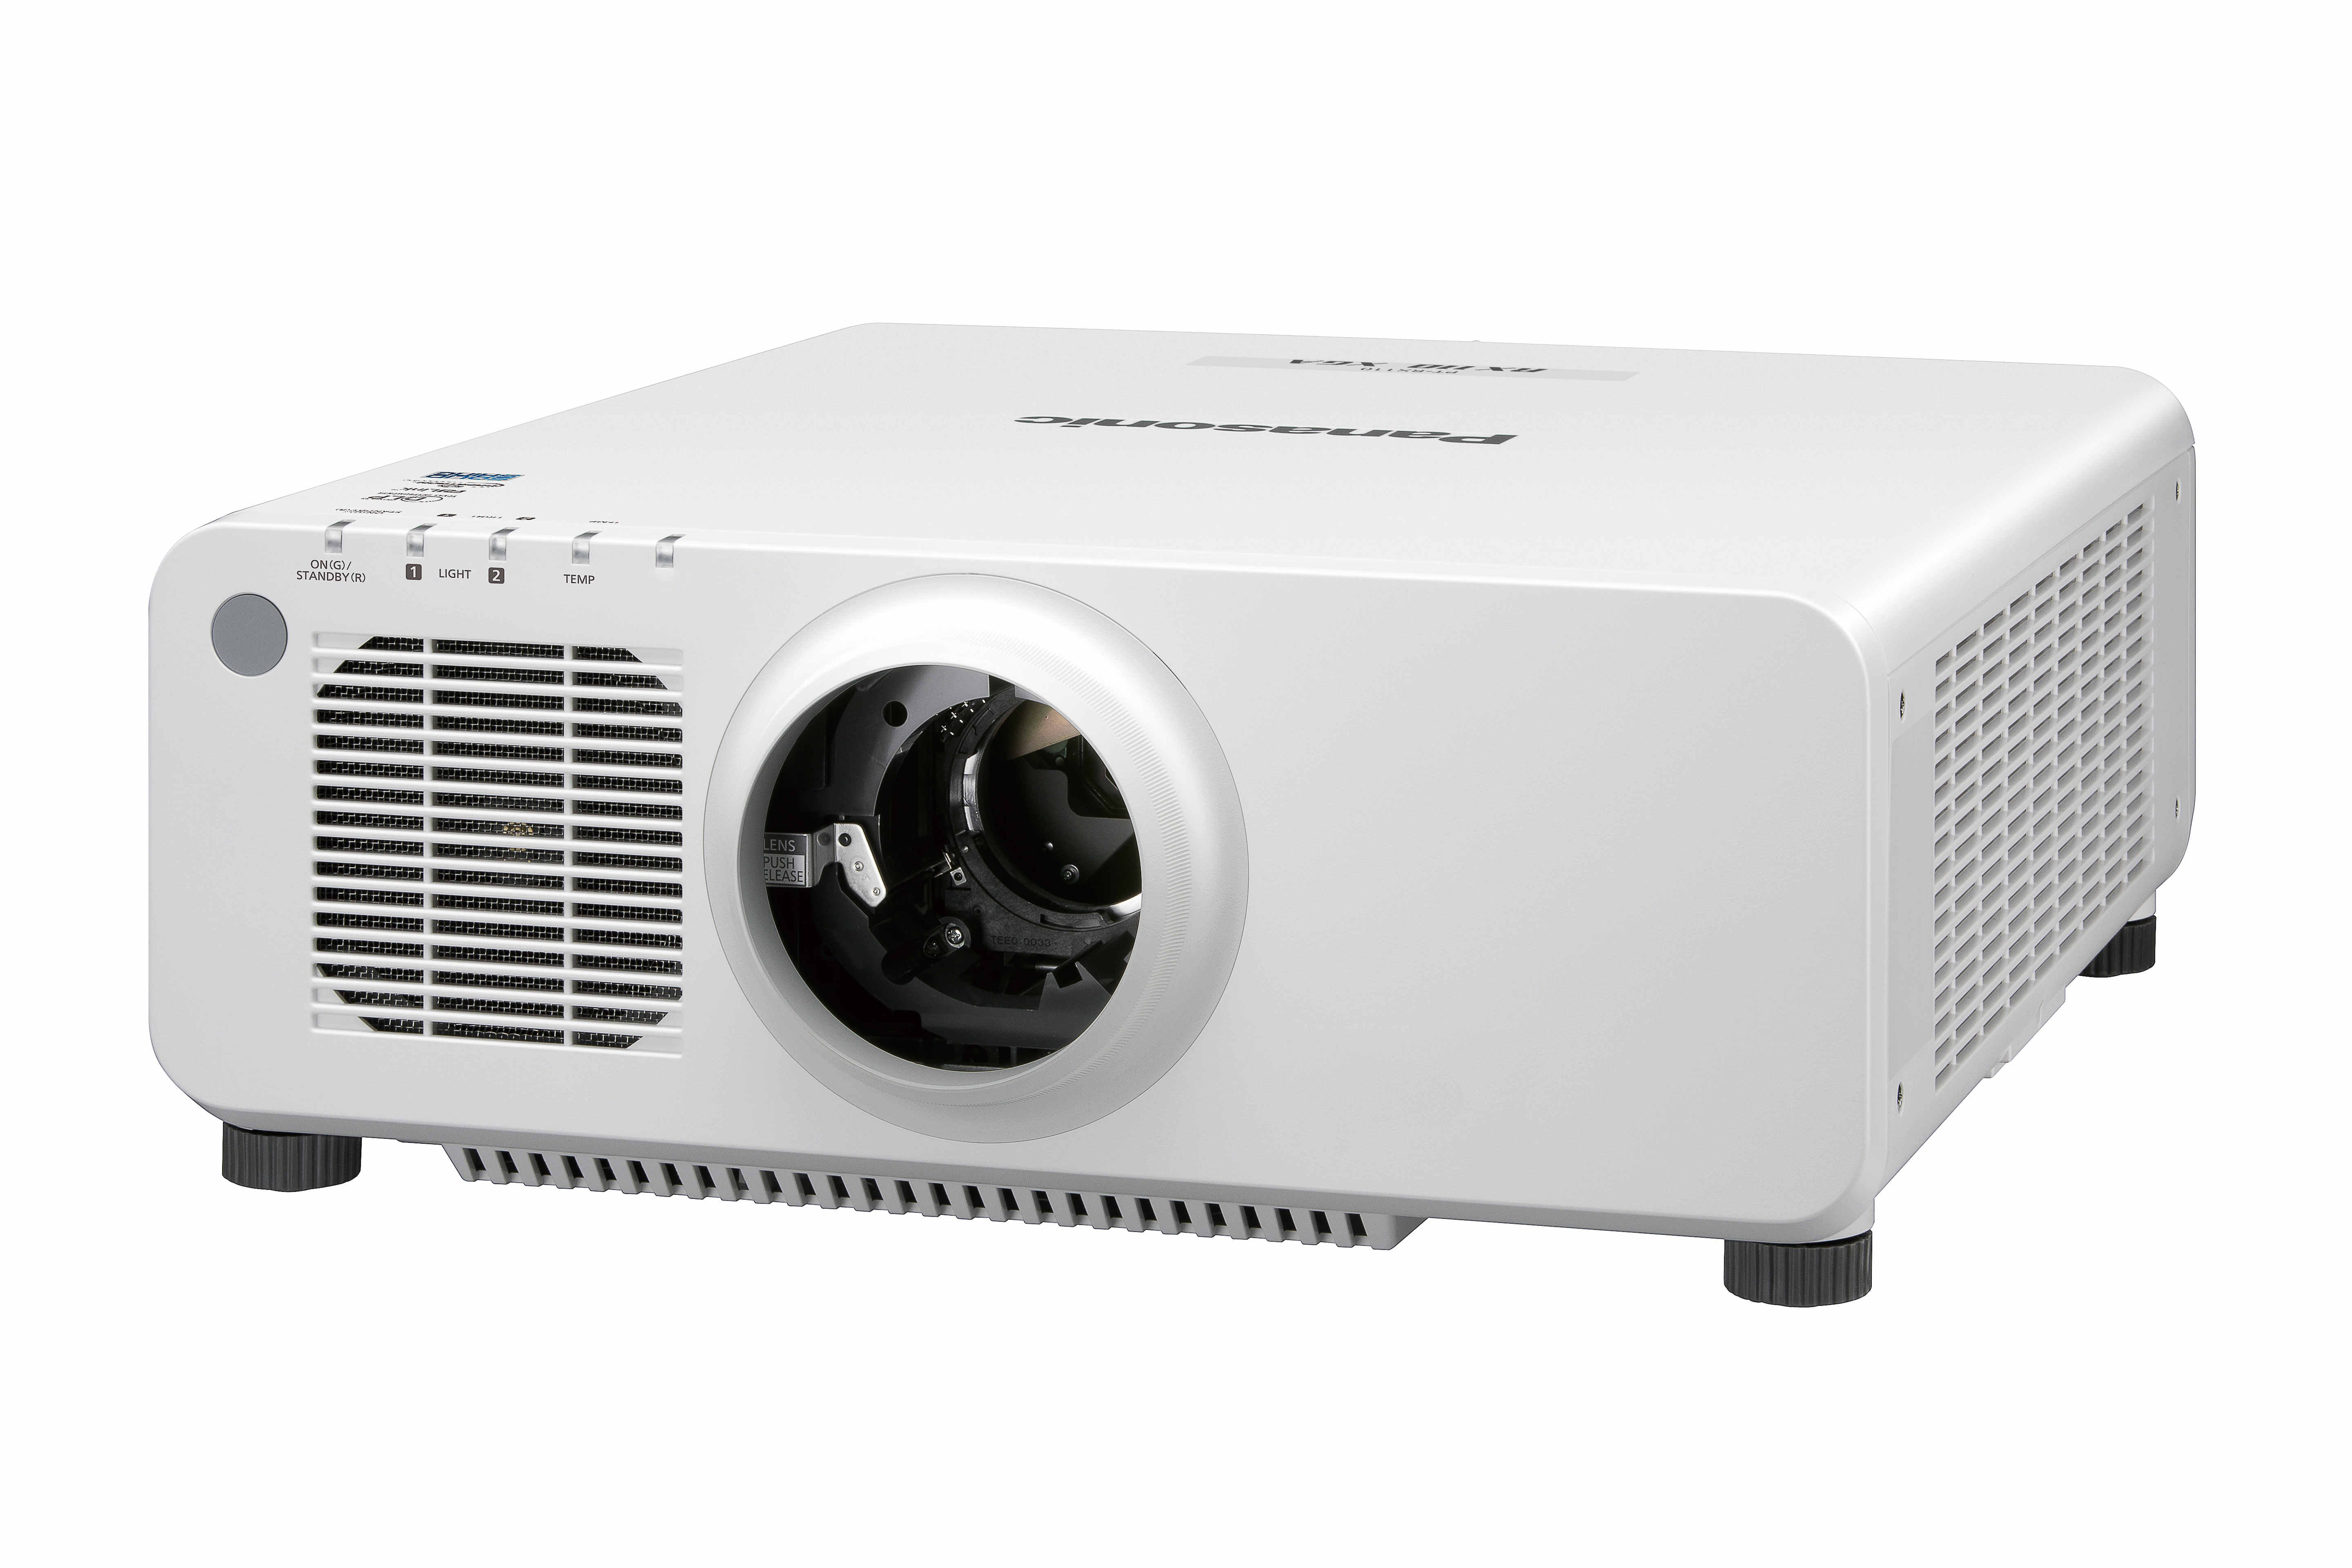 Panasonic PTRX110LWU 10,400lm XGA Laser Projector in White with No Lens PTRX110LWU